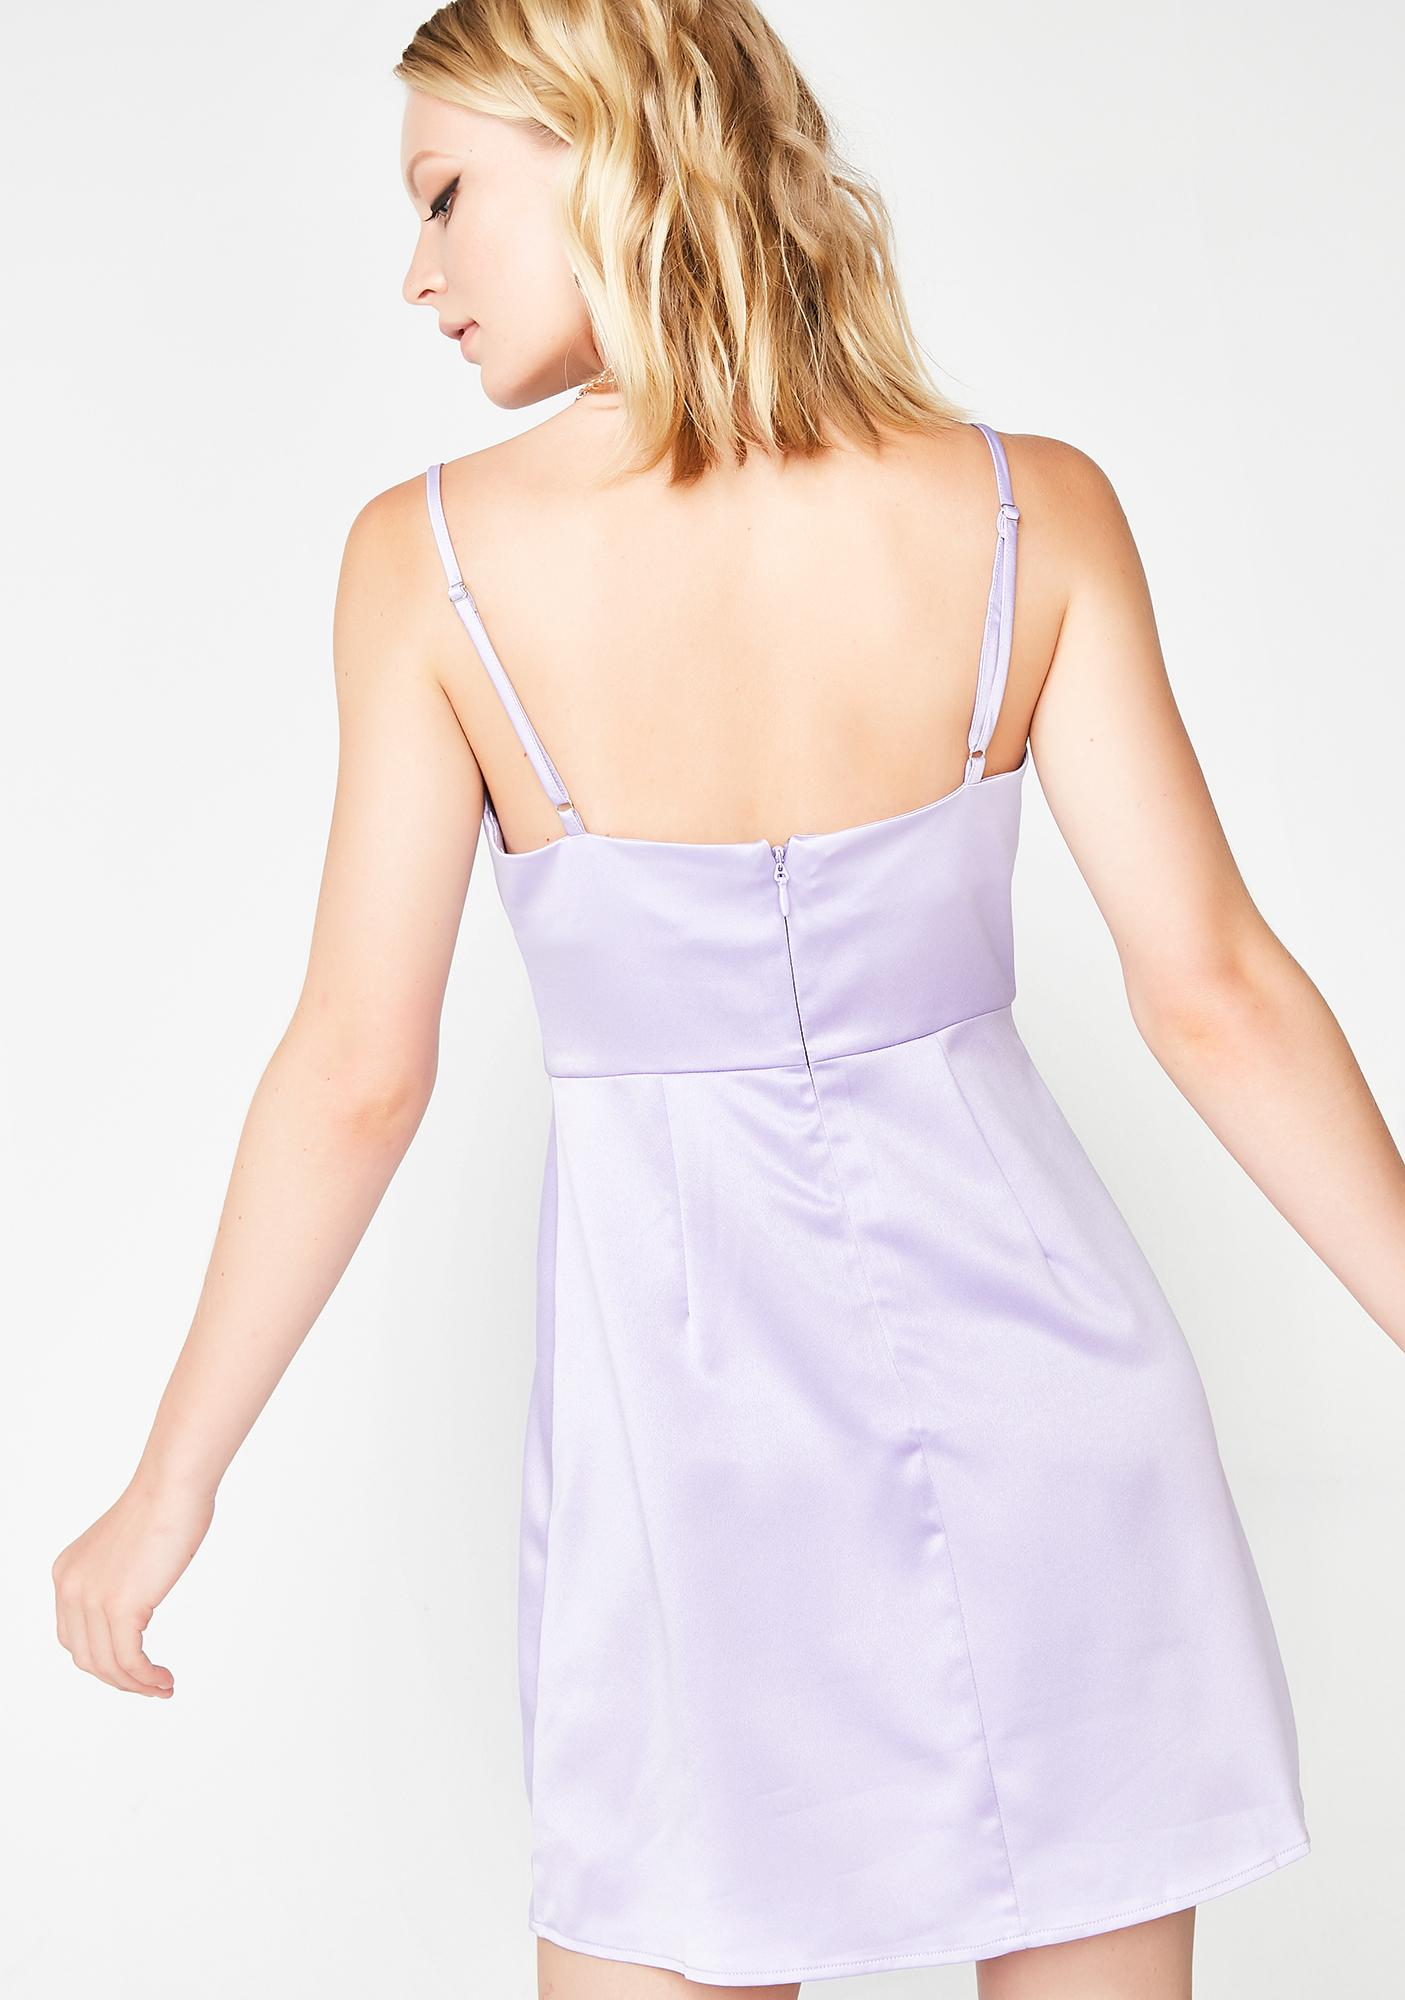 Bliss Bae Silky Slip Dress